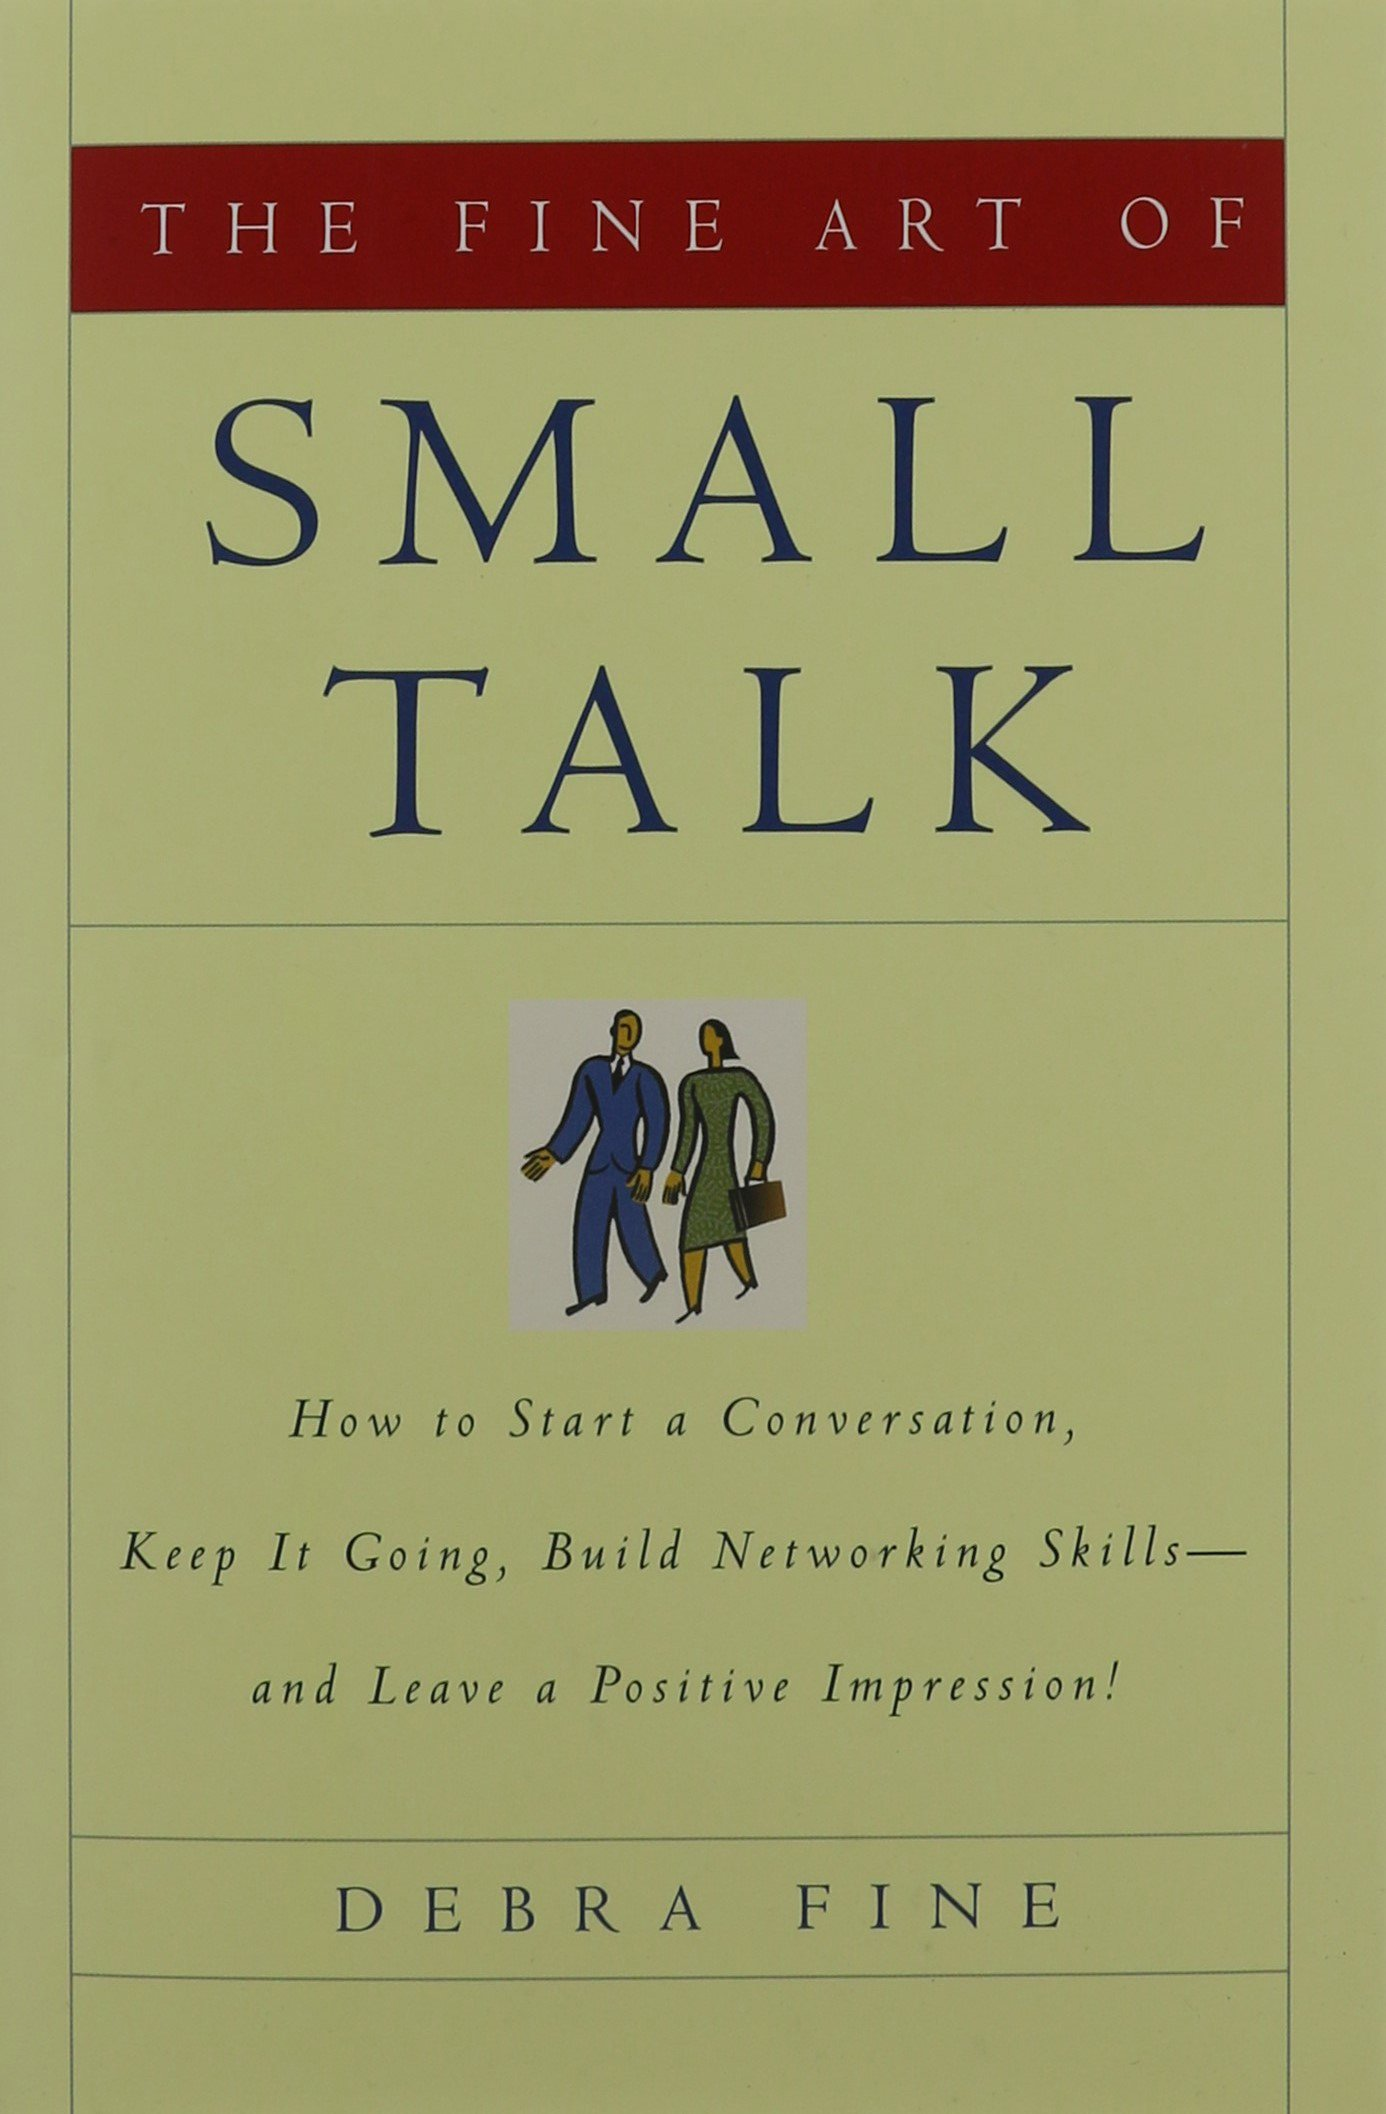 The Art of Small Talk